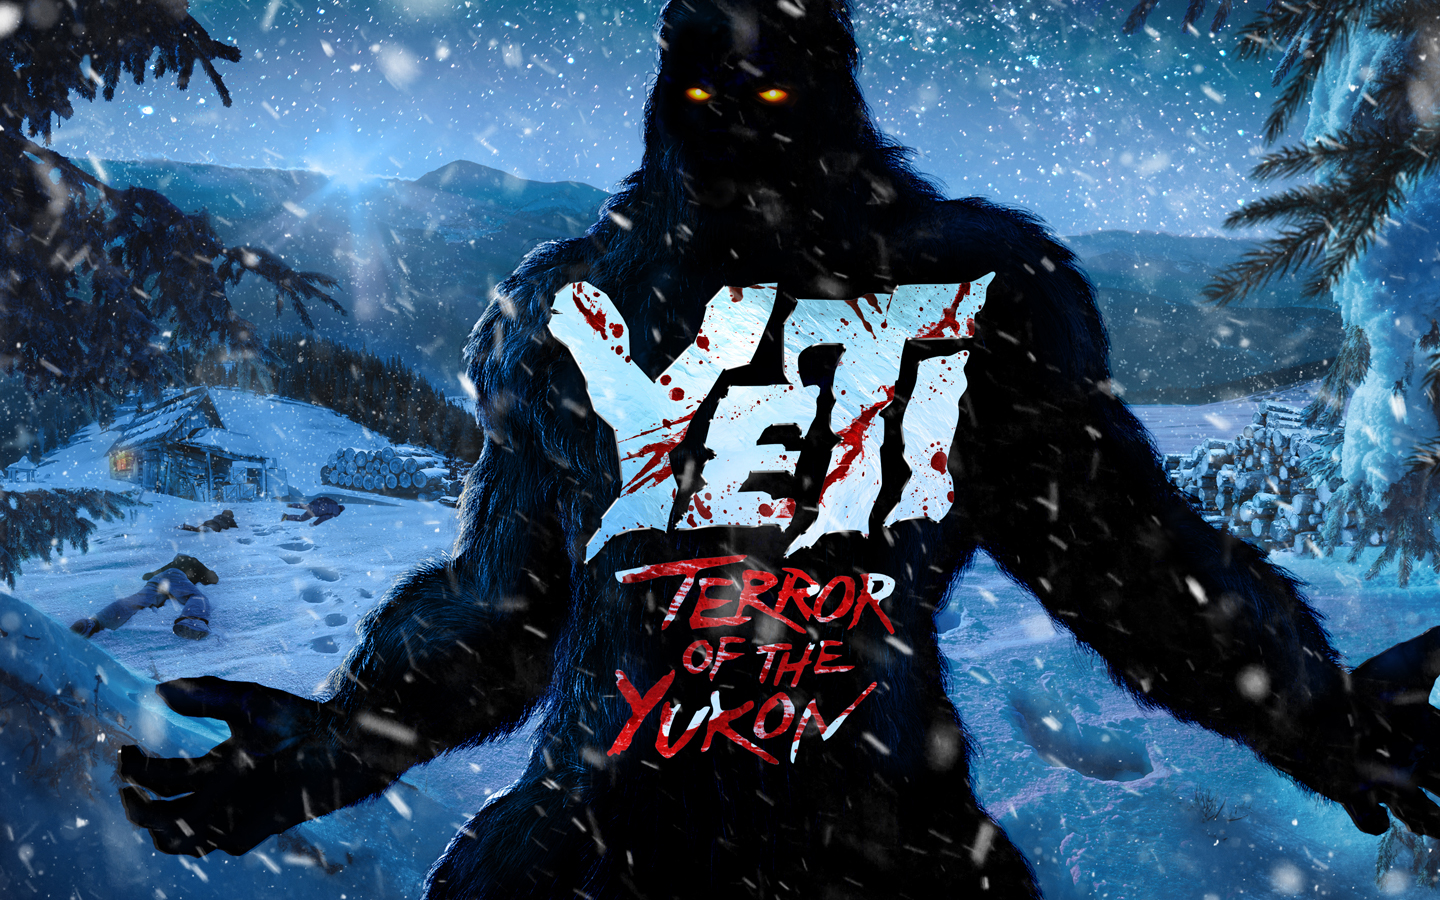 Yeti: Terror of the Yukon announced for Halloween Horror Nights 2019